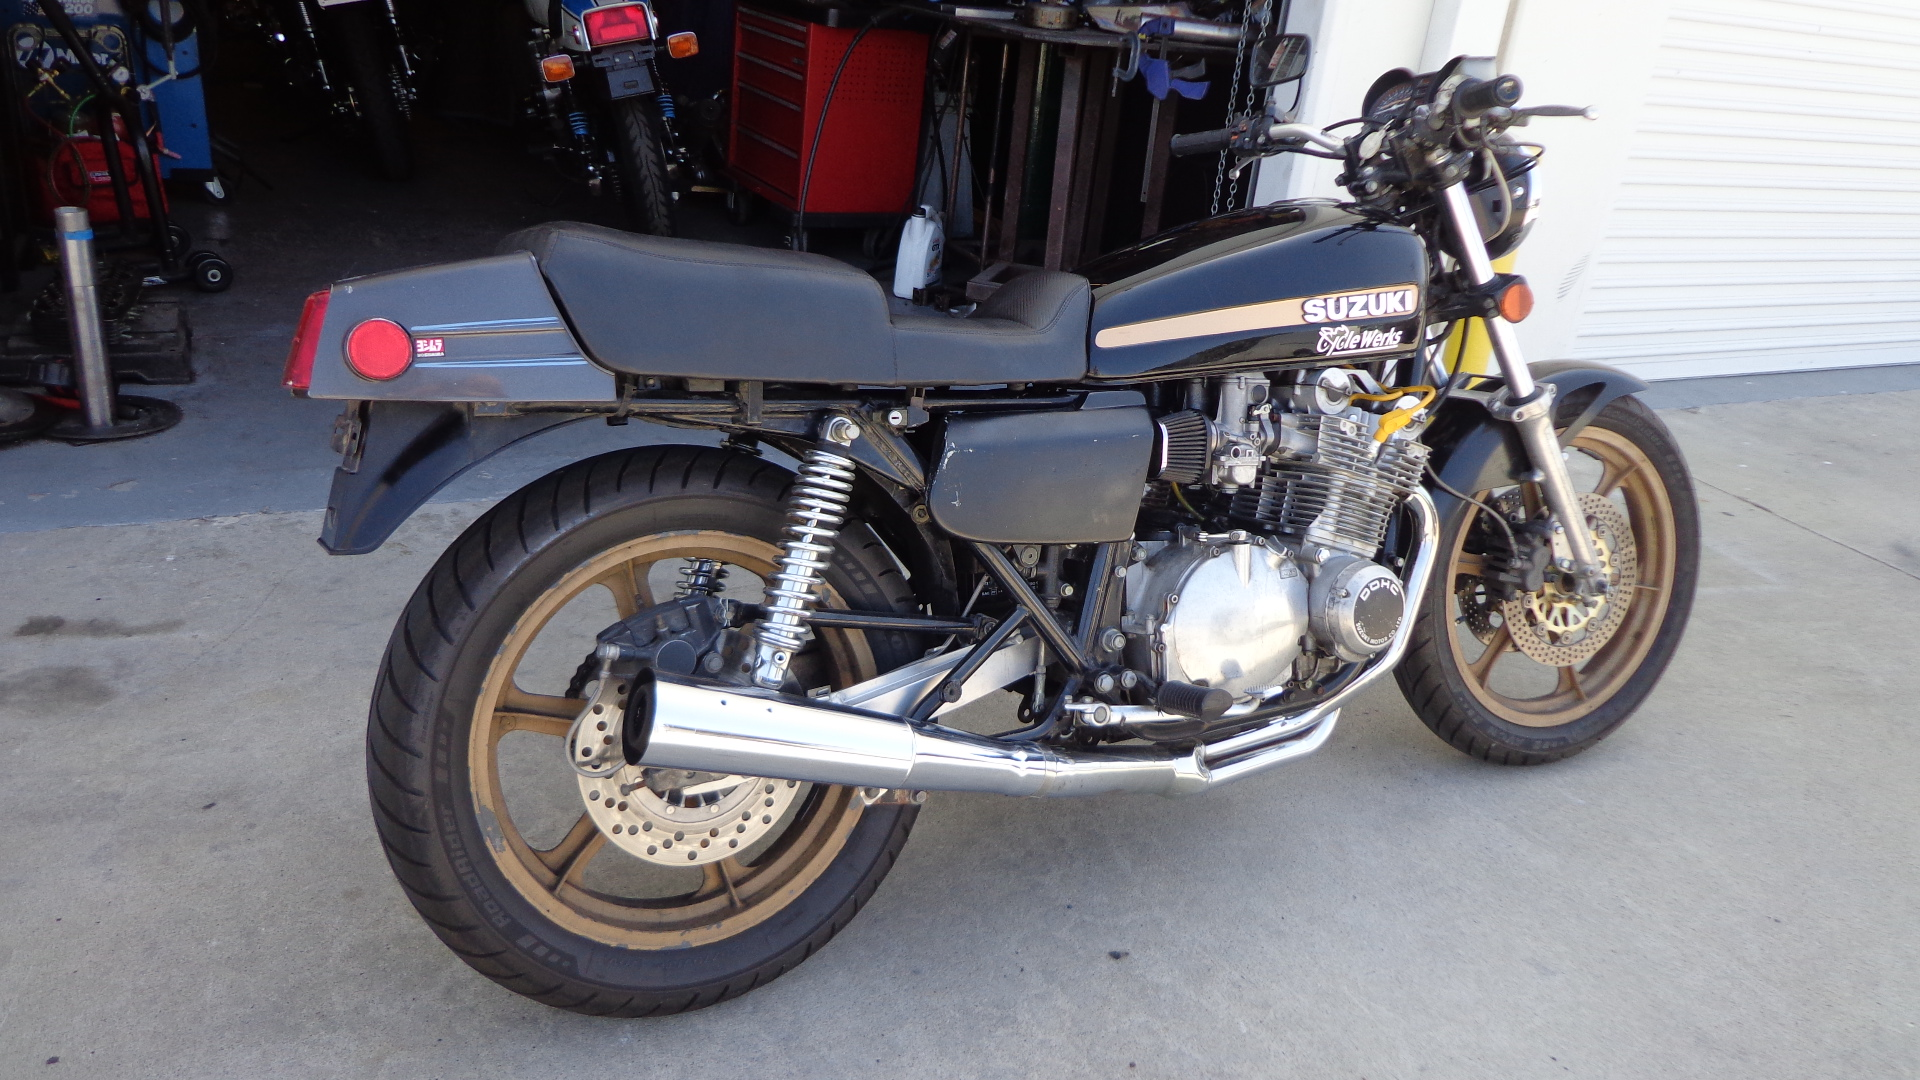 GS Suzuki's are getting our Exhaust treatment – Carpy's Cafe